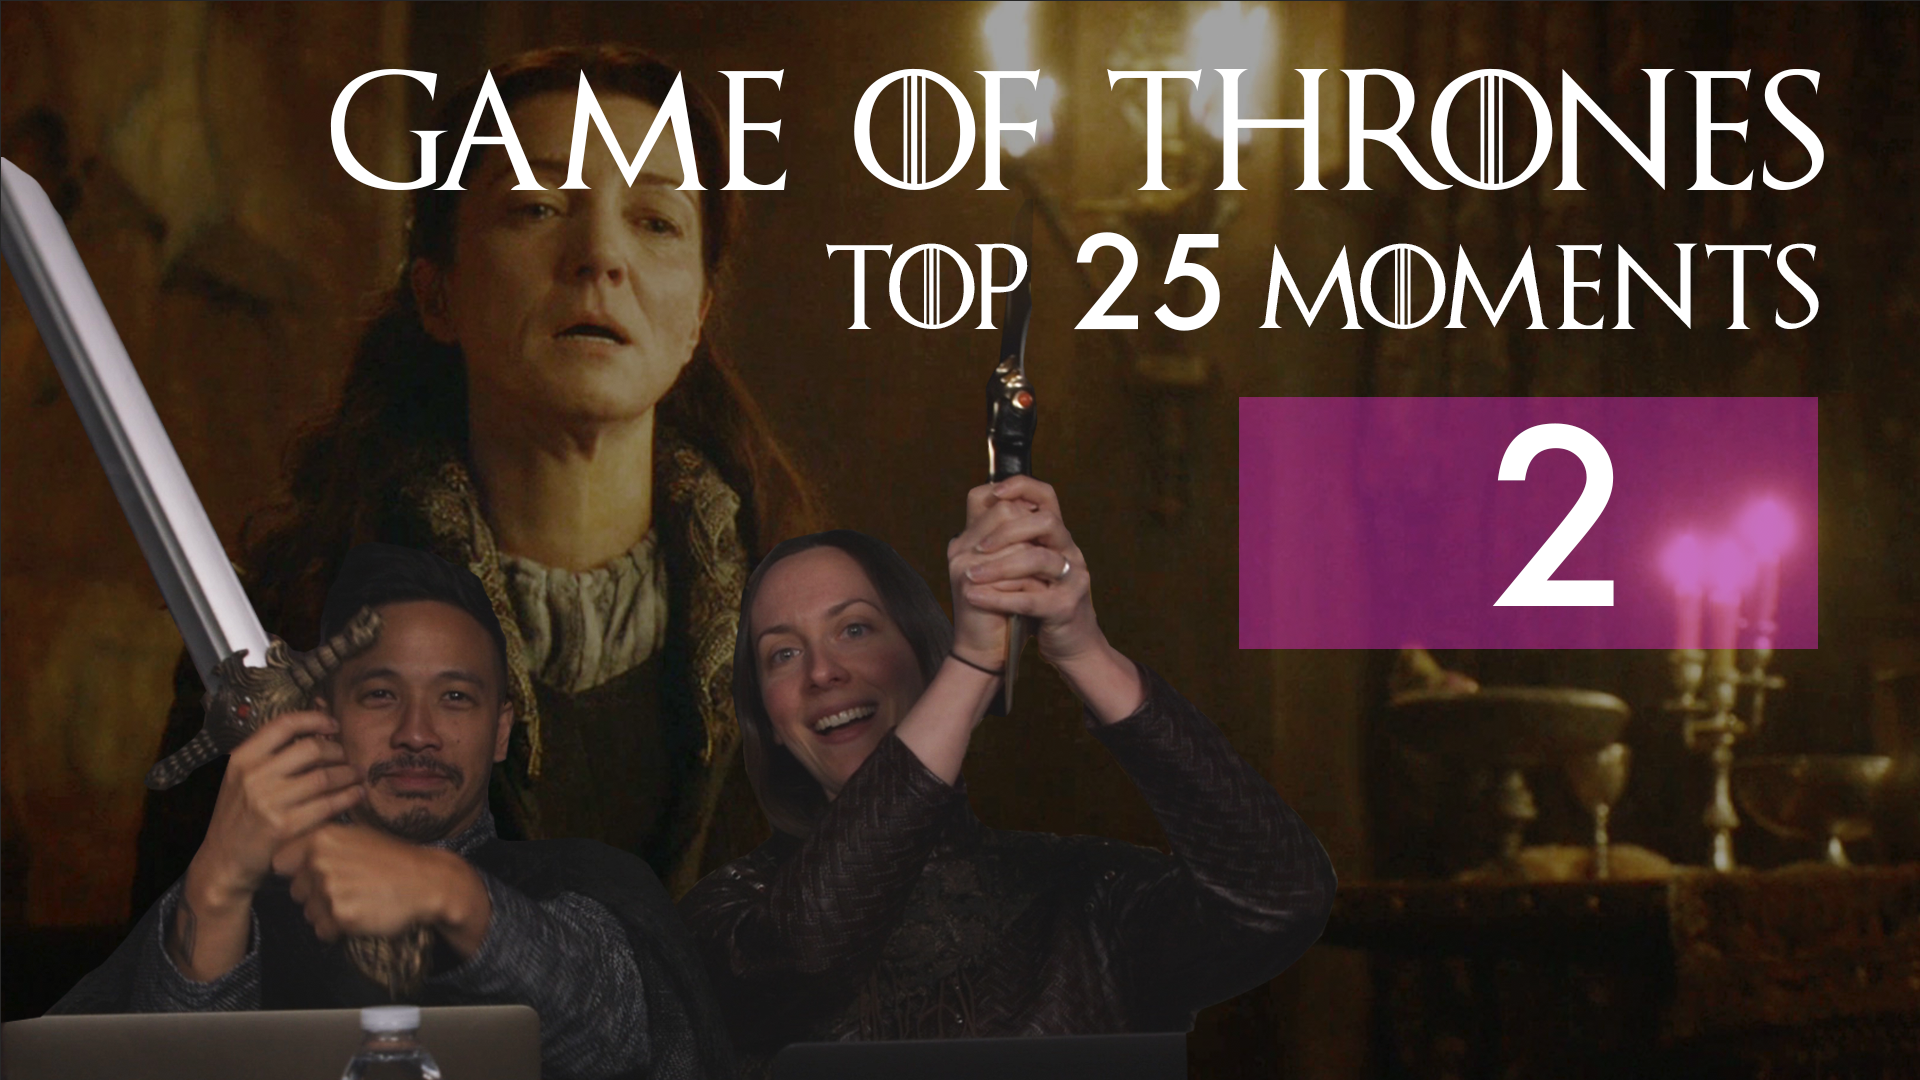 Game Of Thrones Red Wedding.The Red Wedding Binge Mode S Game Of Thrones Top 25 Moments The